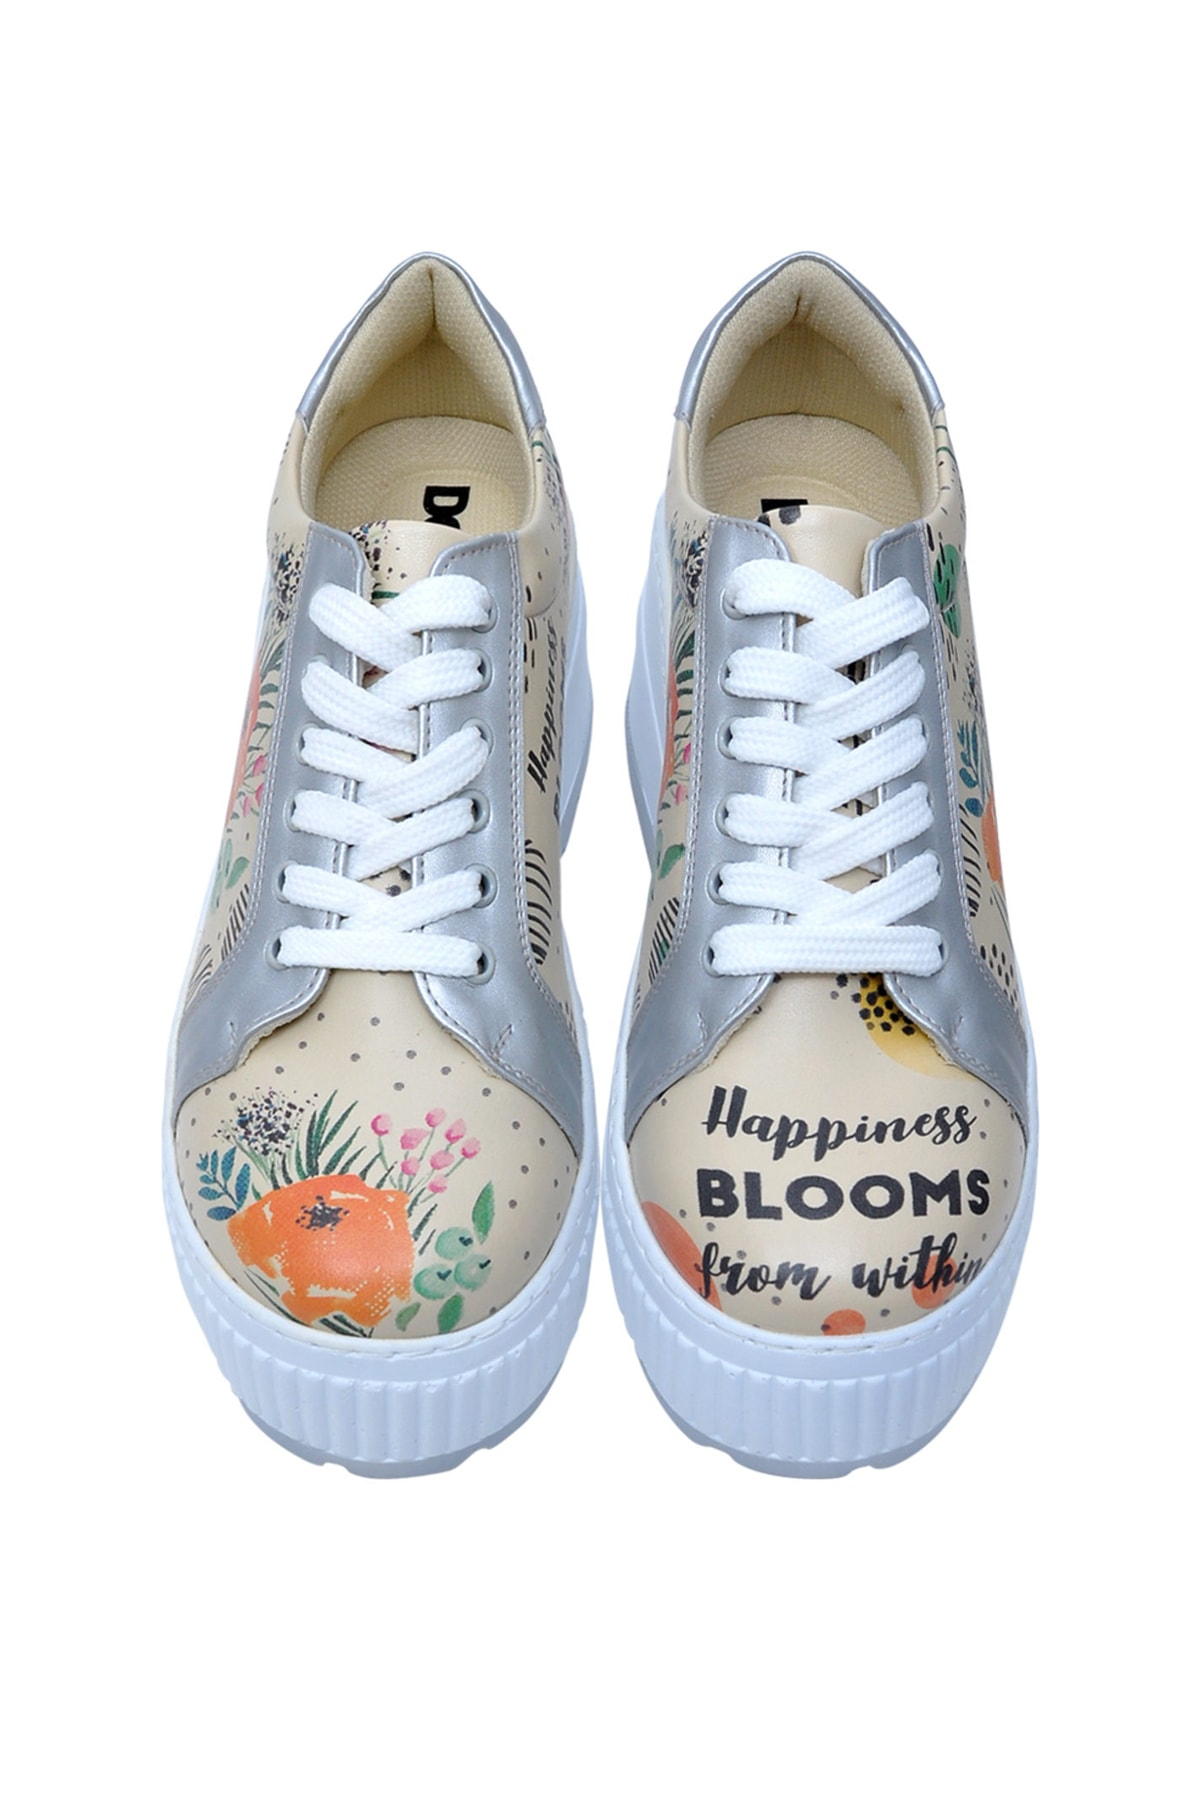 Dogo Happiness Blooms From Within Kadın Sneaker